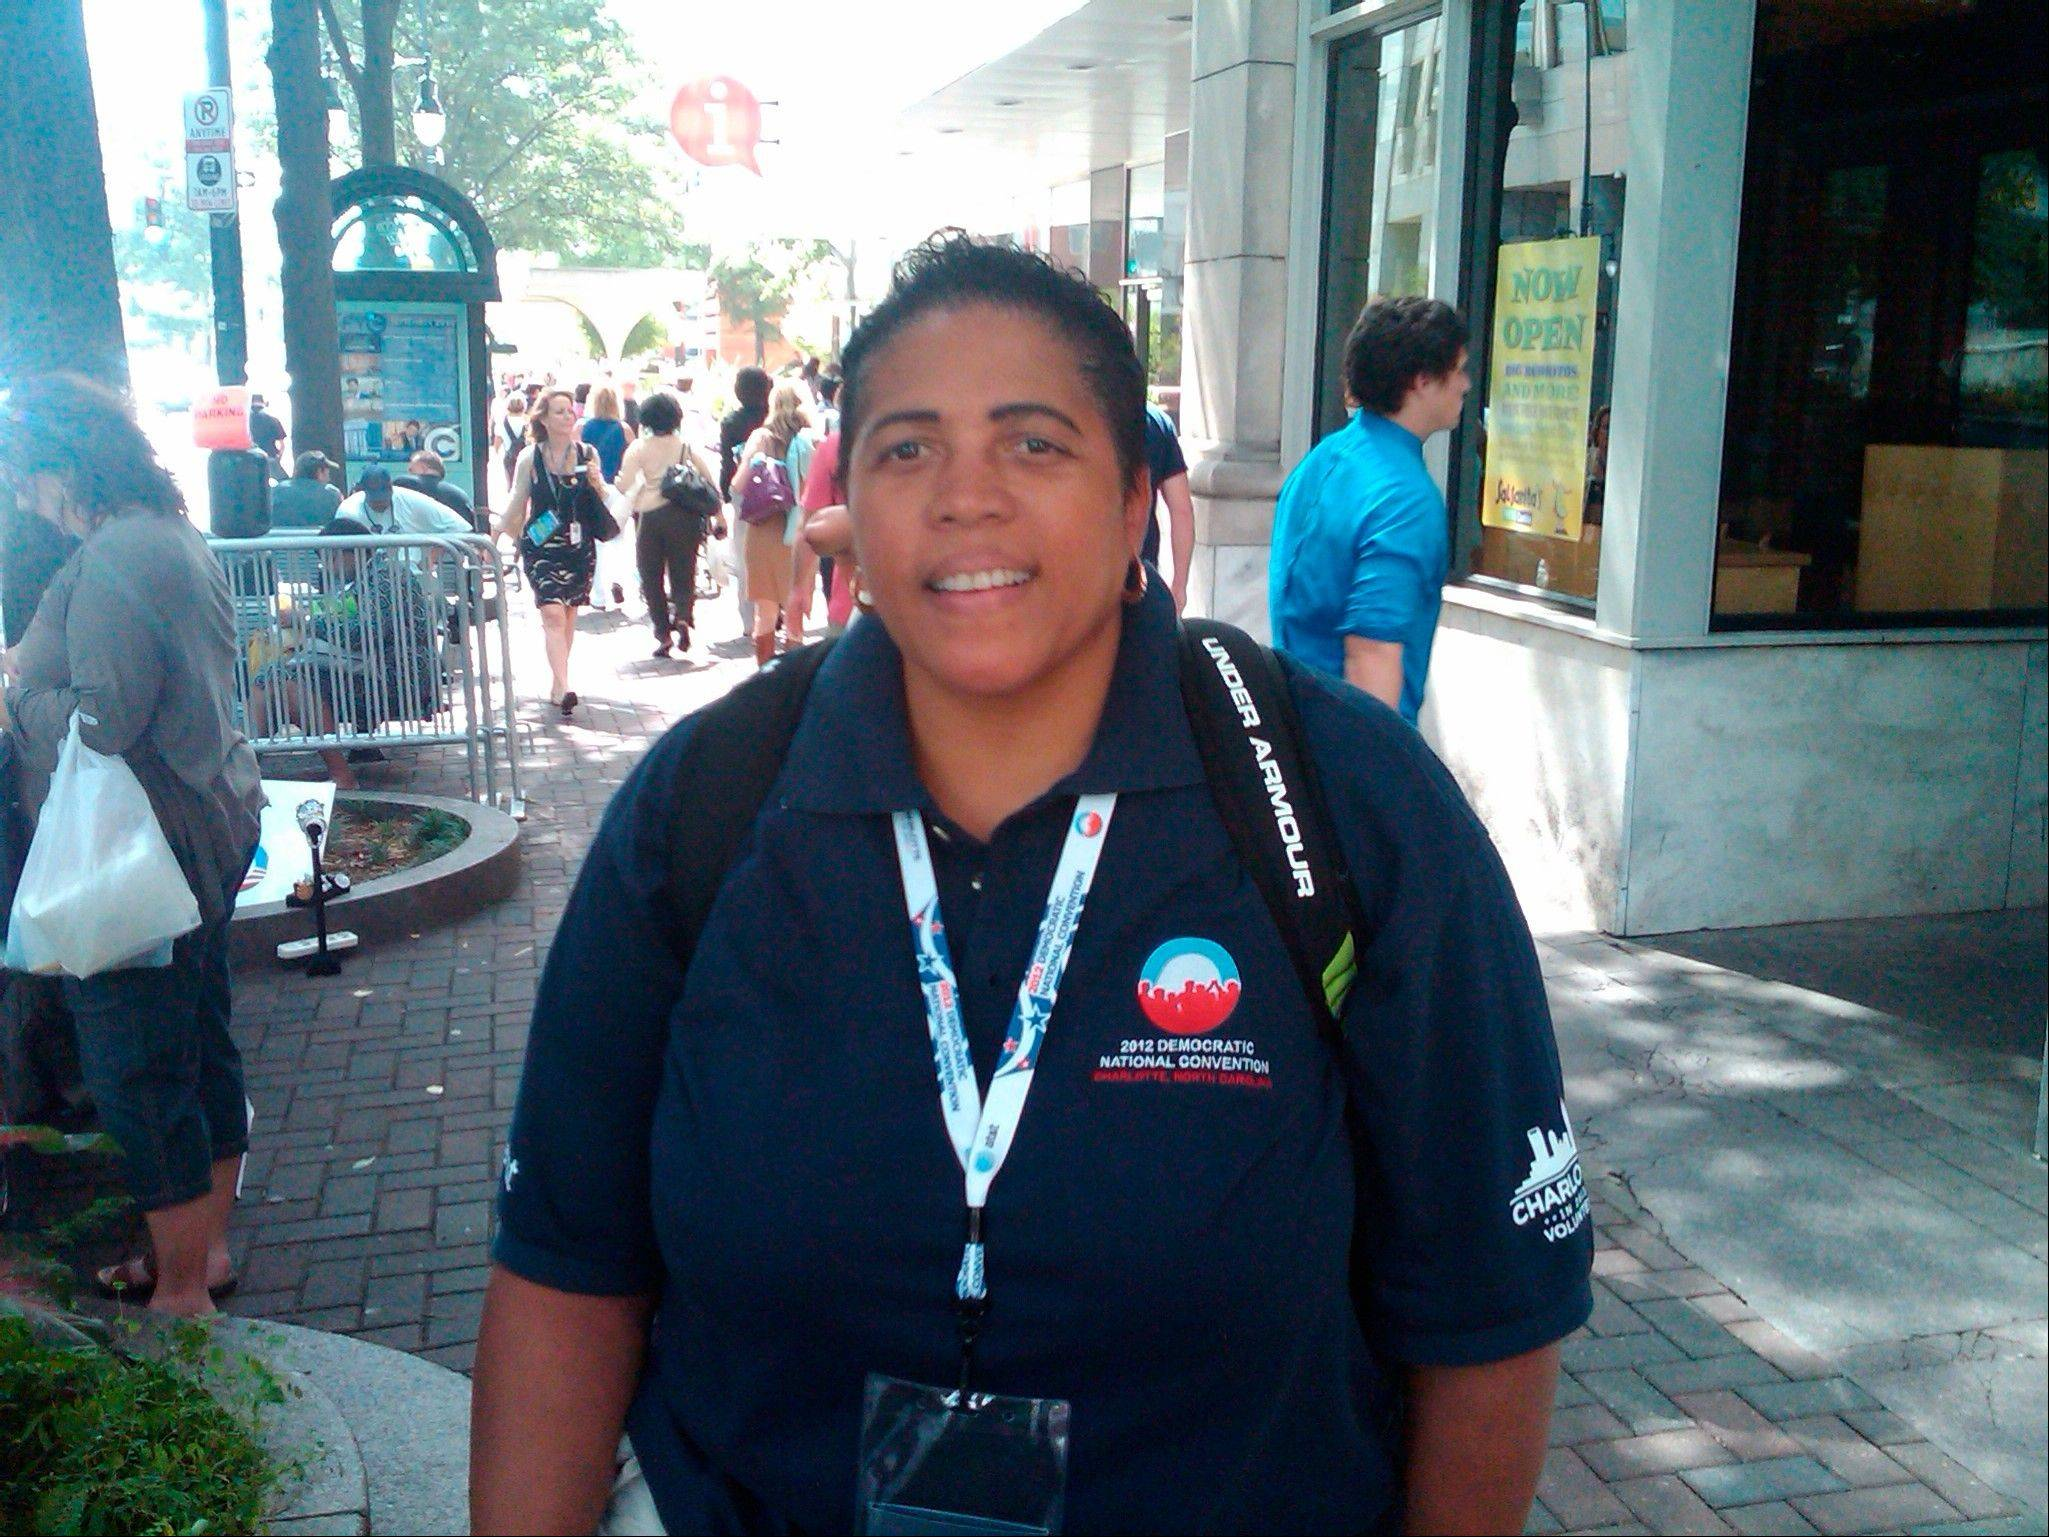 Andrea Chambliss poses for a photo Wednesday in Charlotte, N.C. Chambliss is a volunteer from California who came to Charlotte to see President Obama speak and is disappointed she won't get to be there Thursday after Obama moved his speech.